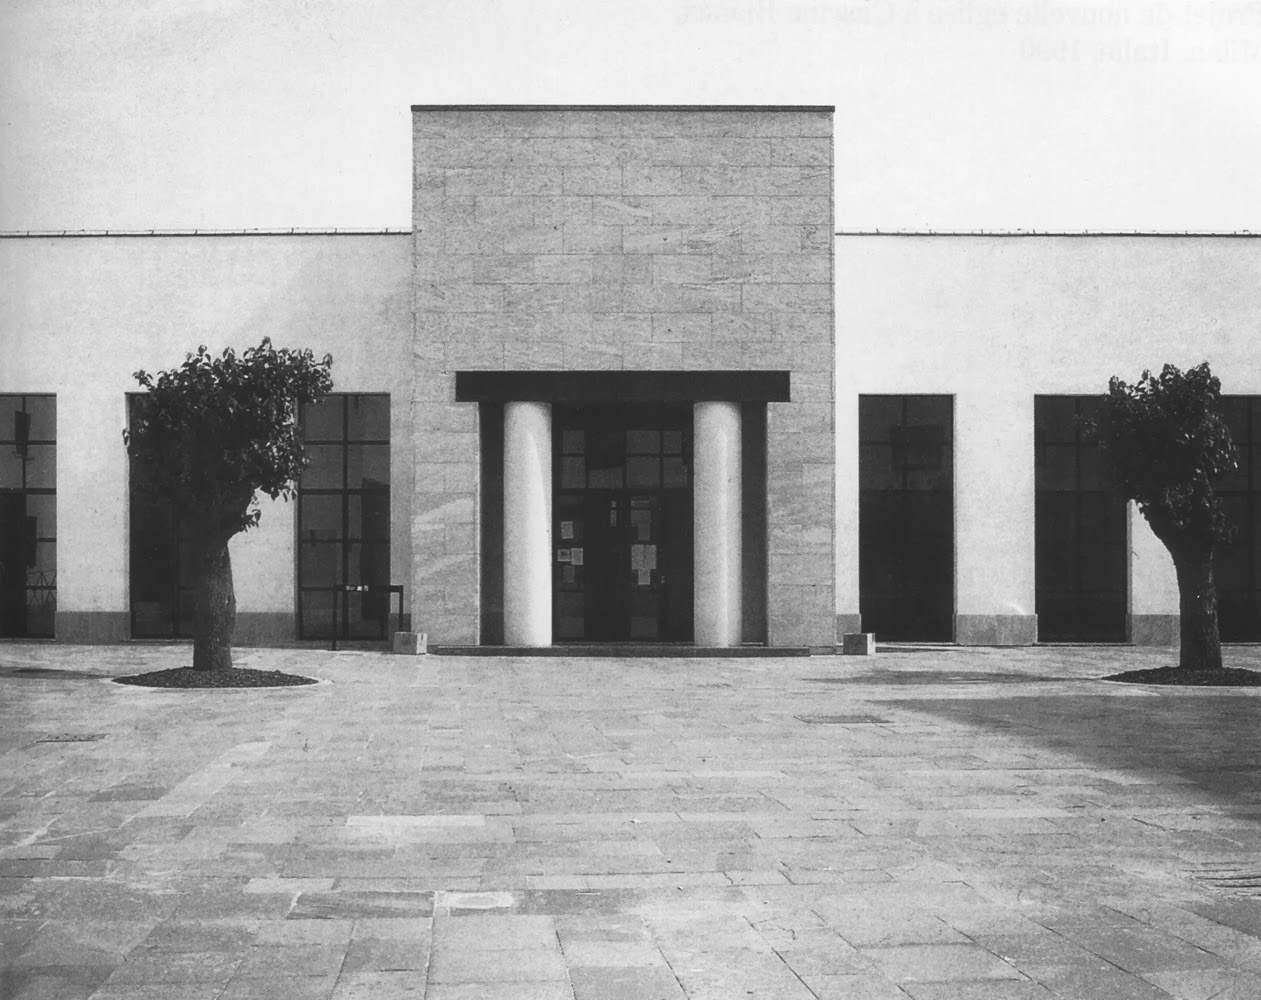 aldo rossi Aldo rossi started to take polaroids at the end of the 1970s, documenting  journeys and his whereabouts they became a visual diary of the.